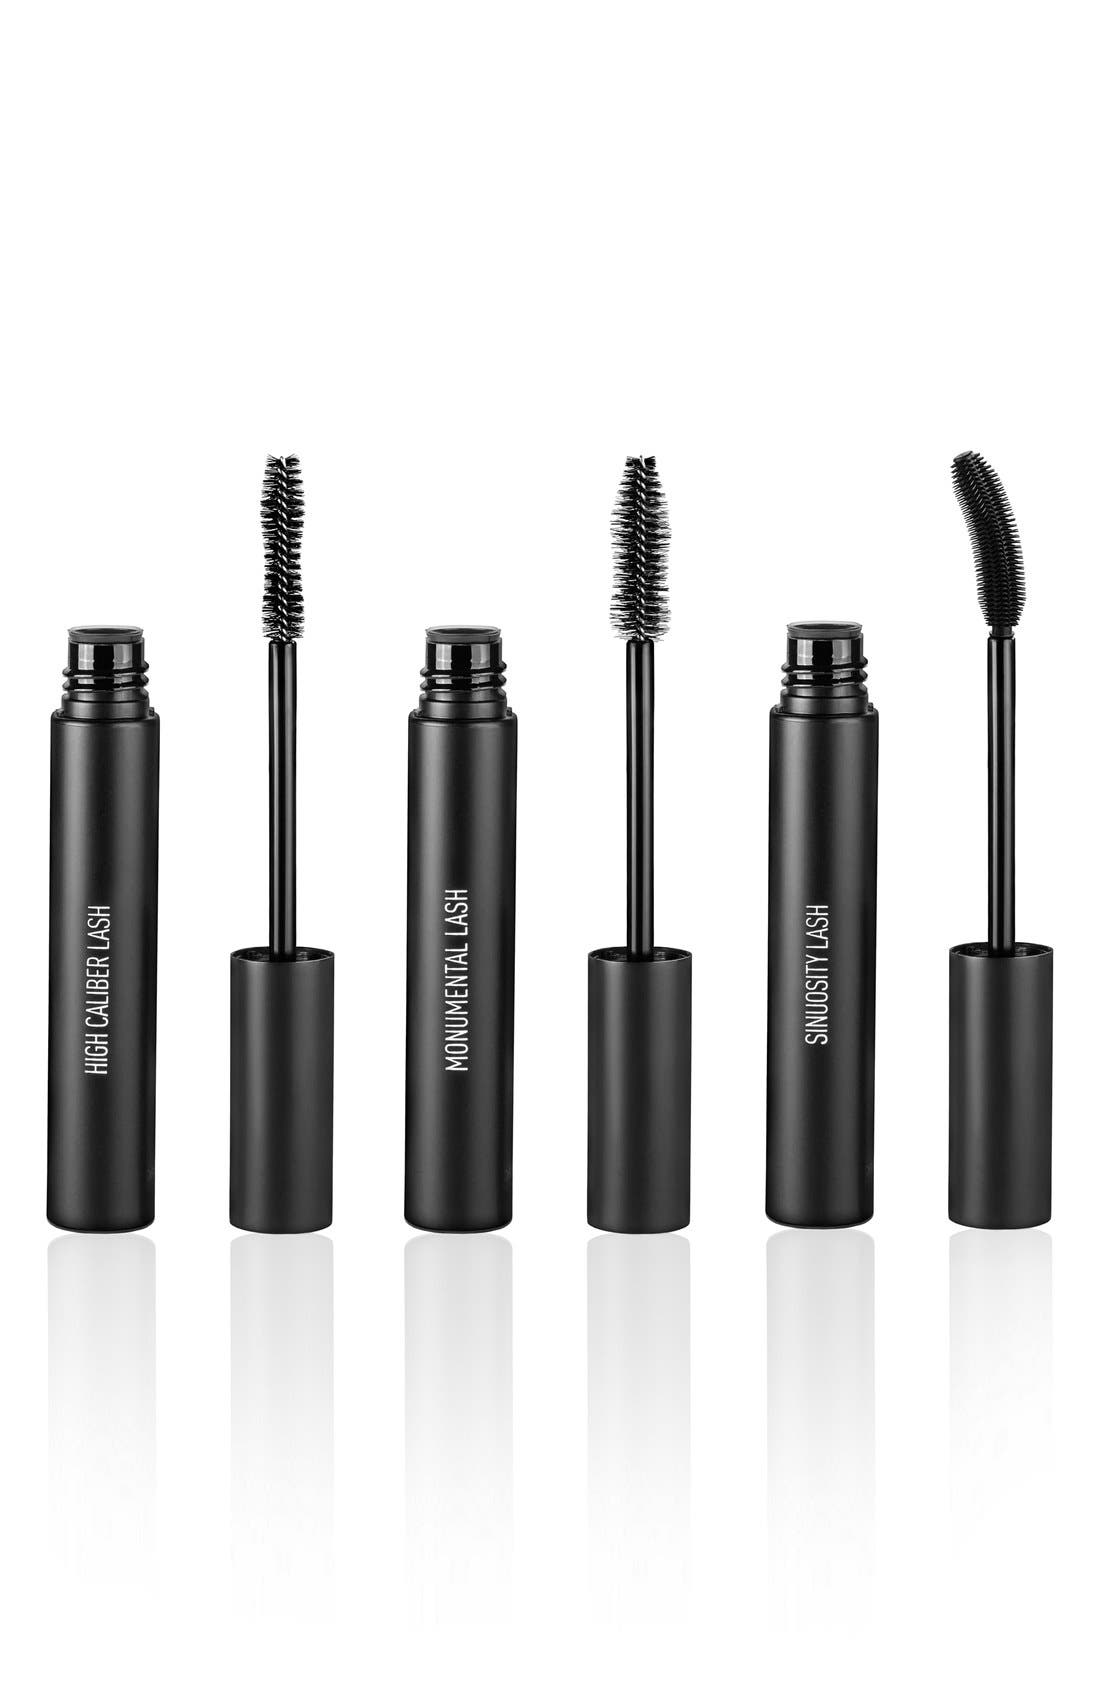 Sigma Beauty 'Structural Lashes' Mascara Set